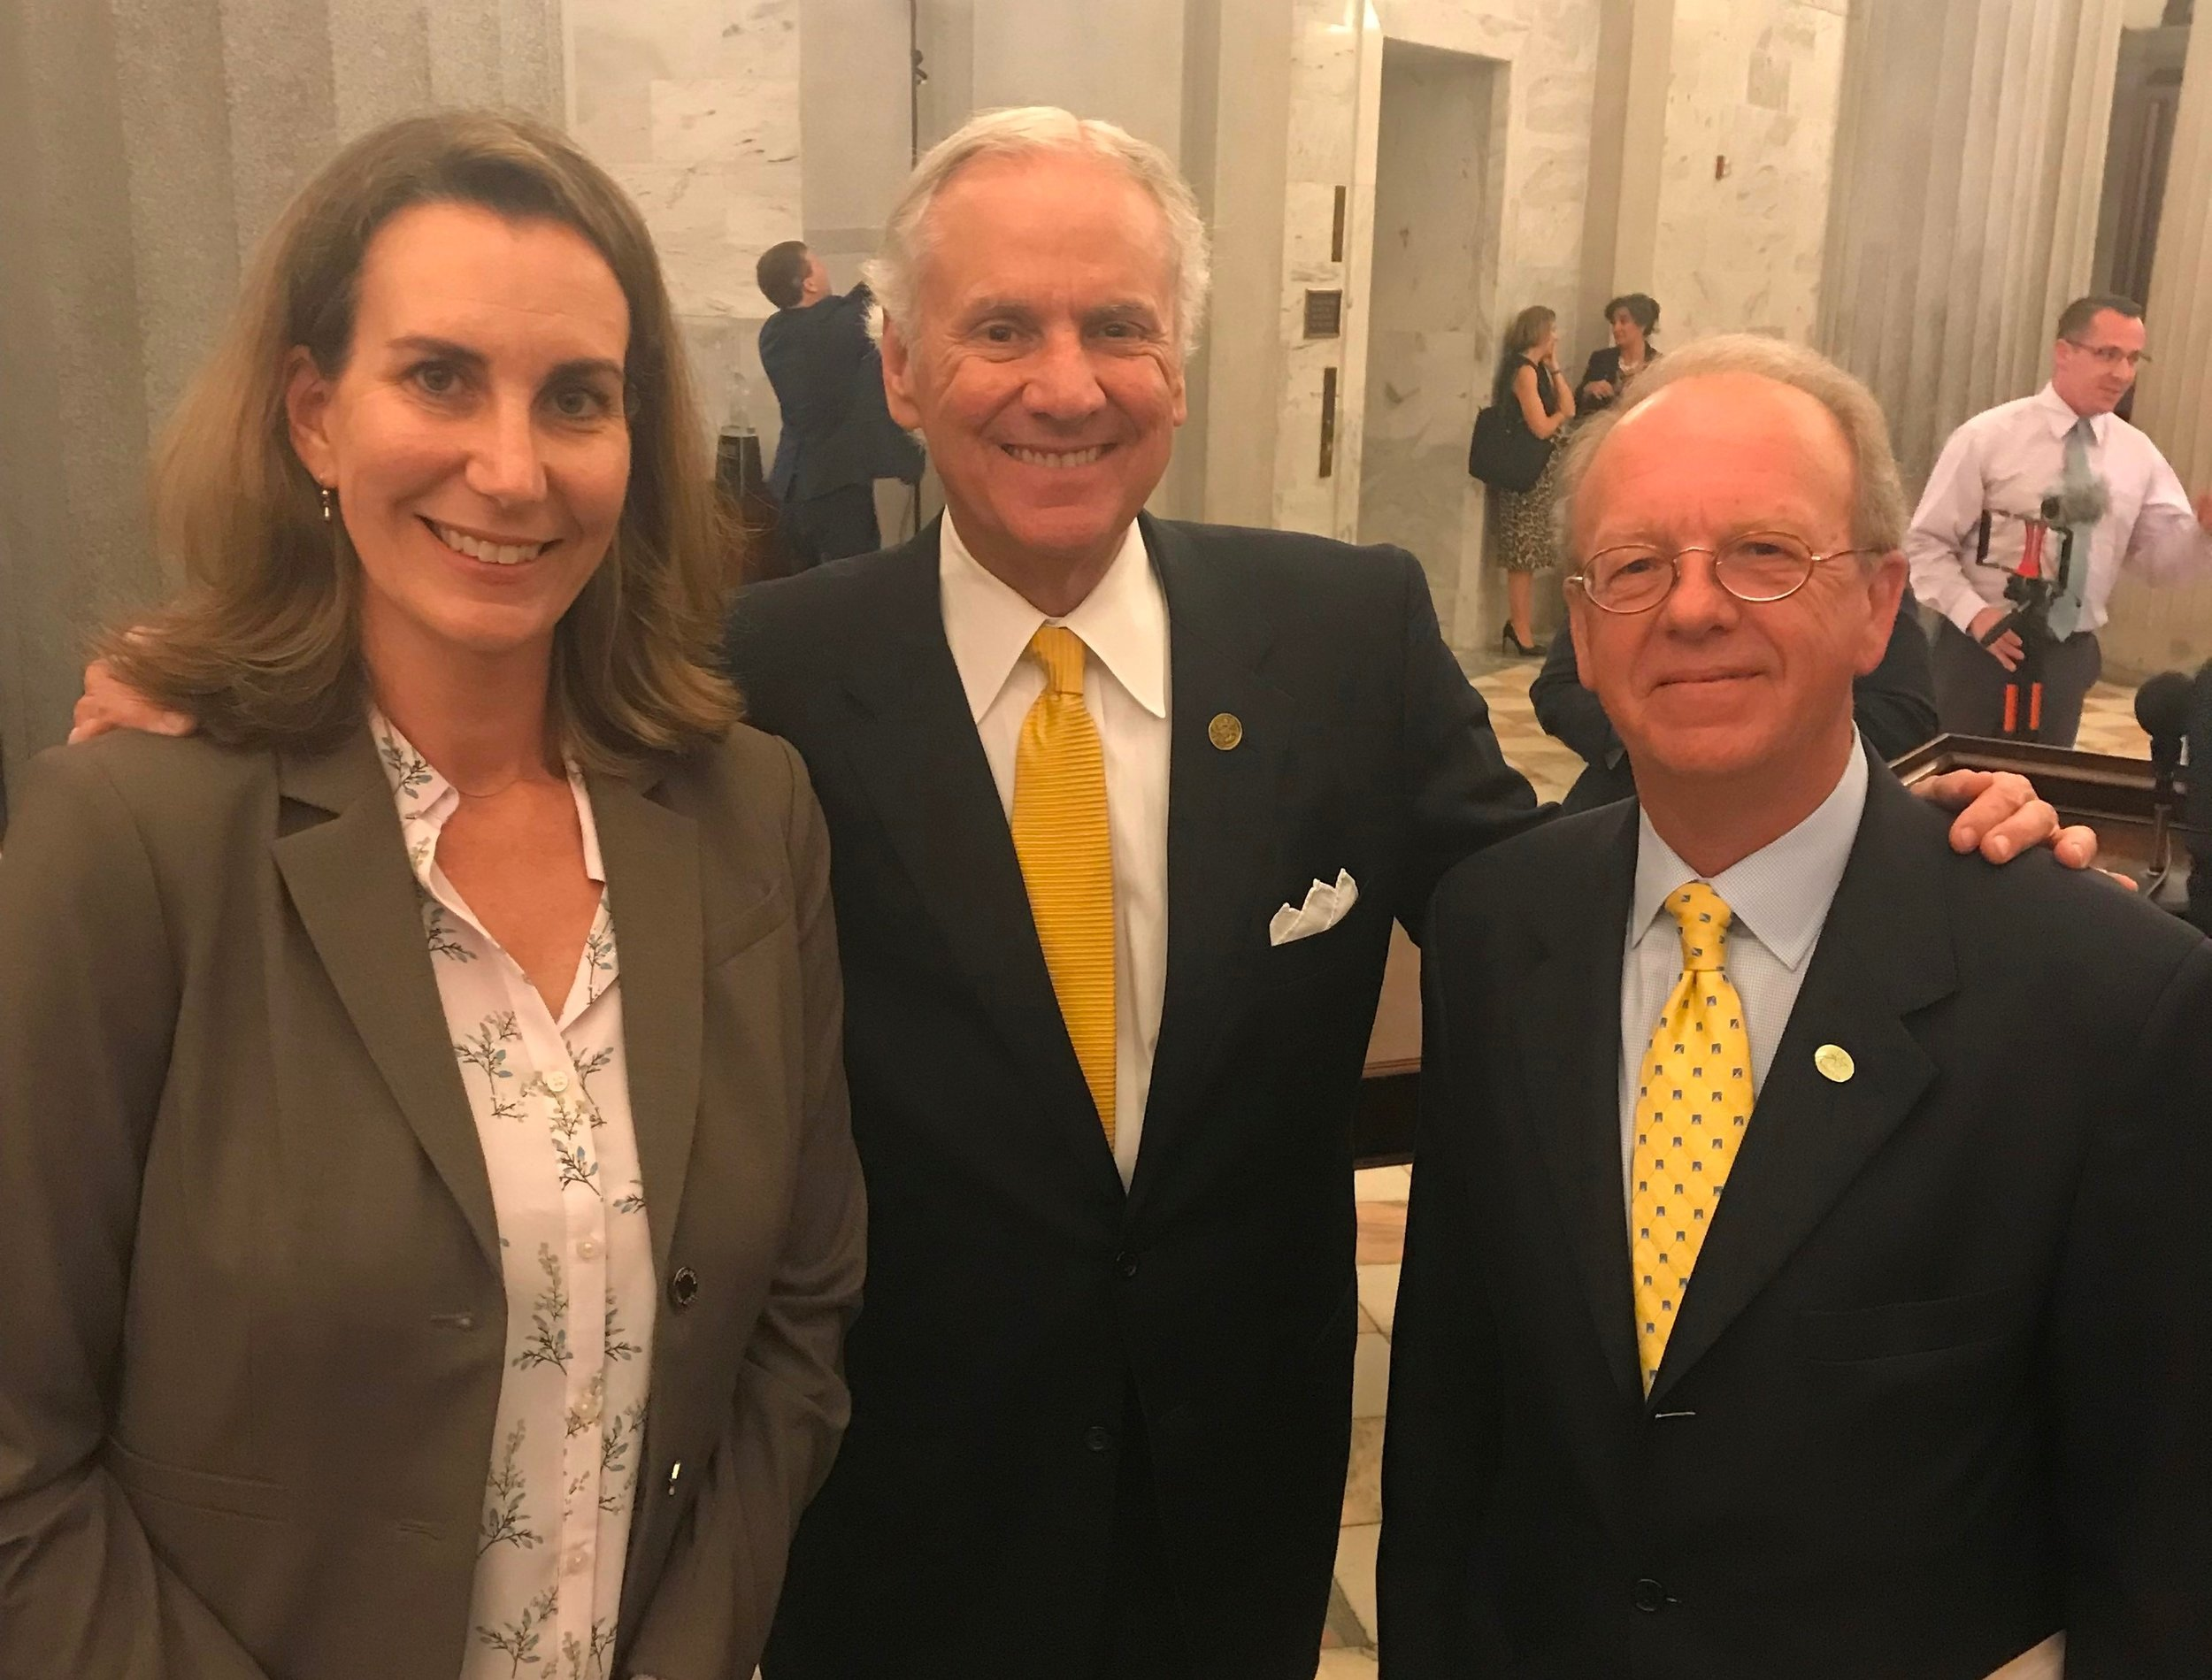 SCWF Executive Director, Sara Green, and SCWF Government Relations Manager, Trip King, stand with Governor Henry McMaster after he signed the Energy Freedom Act on May 16.